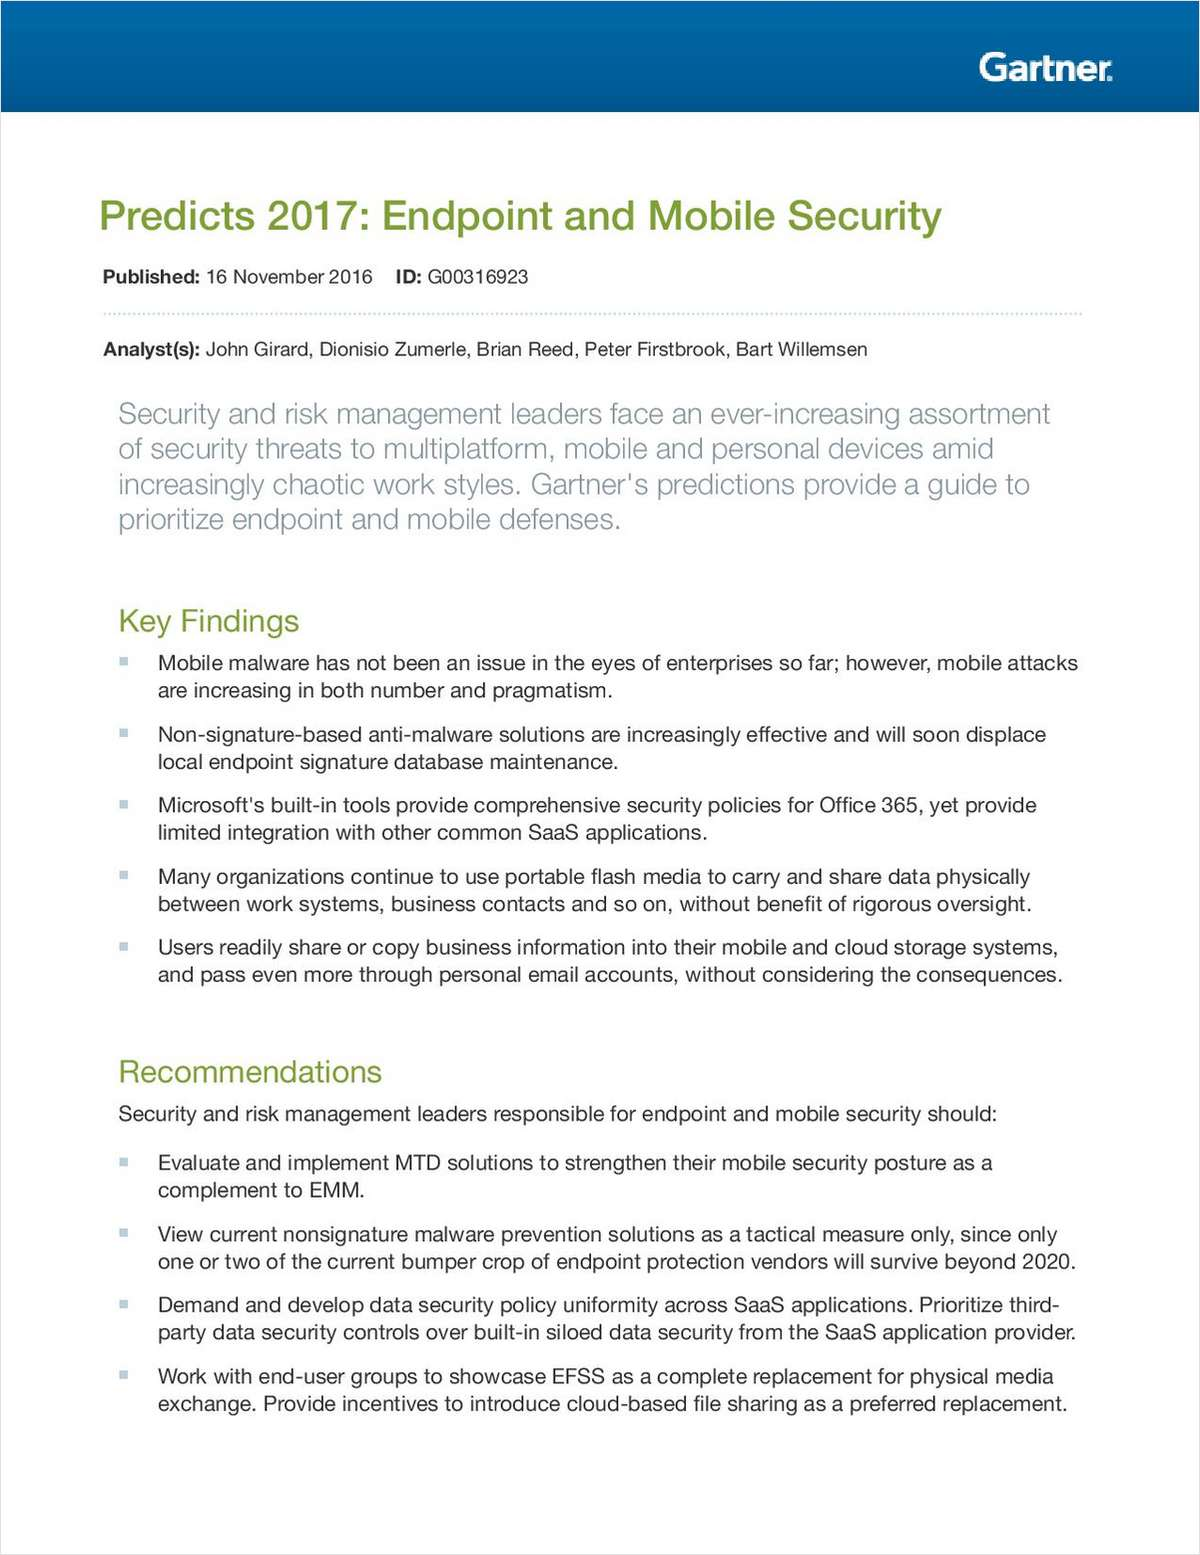 Predicts 2017: Endpoint and Mobile Security